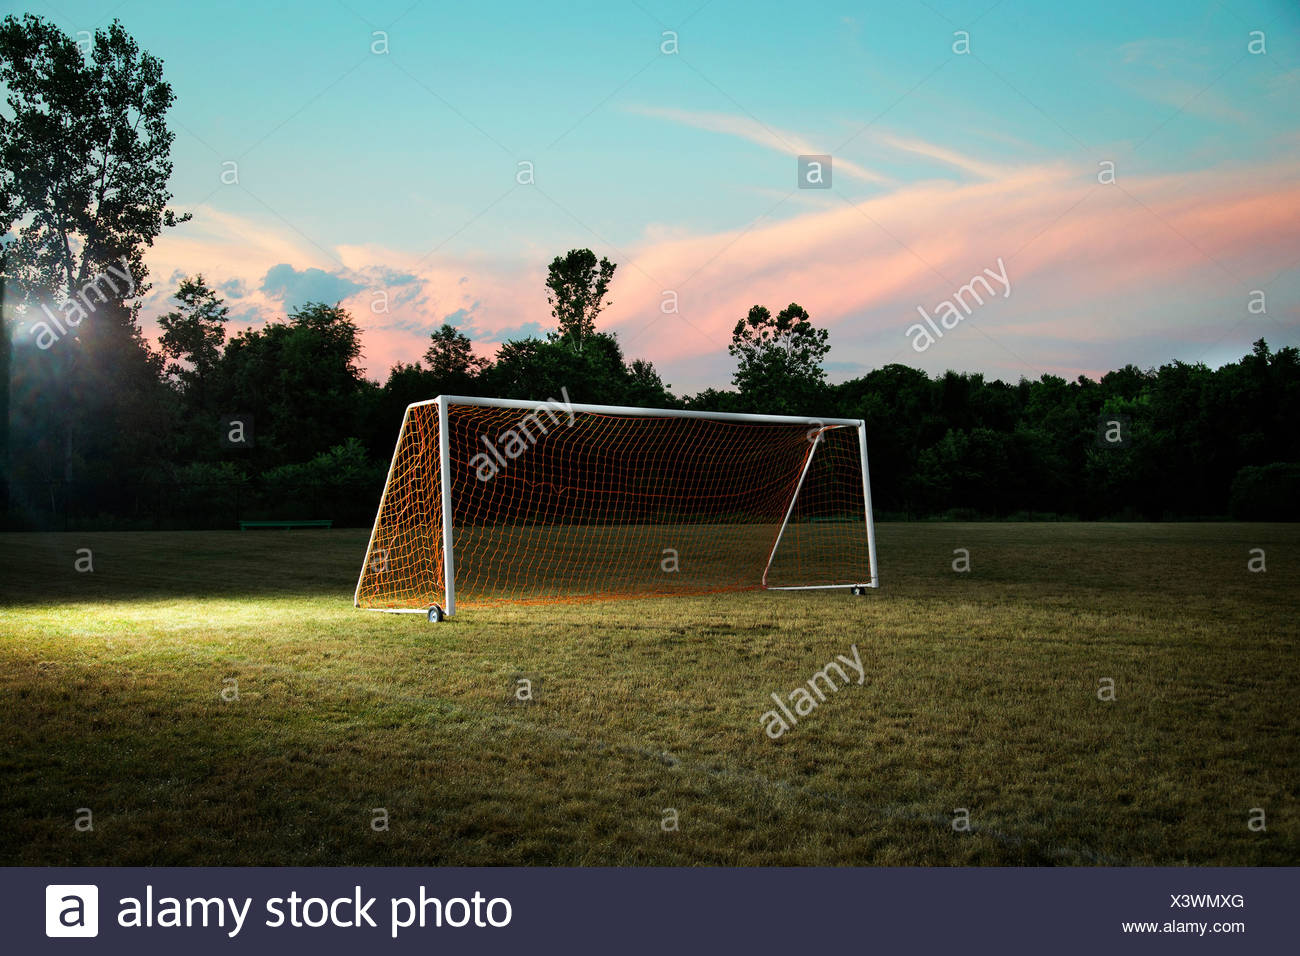 Empty goal on soccer pitch - Stock Image